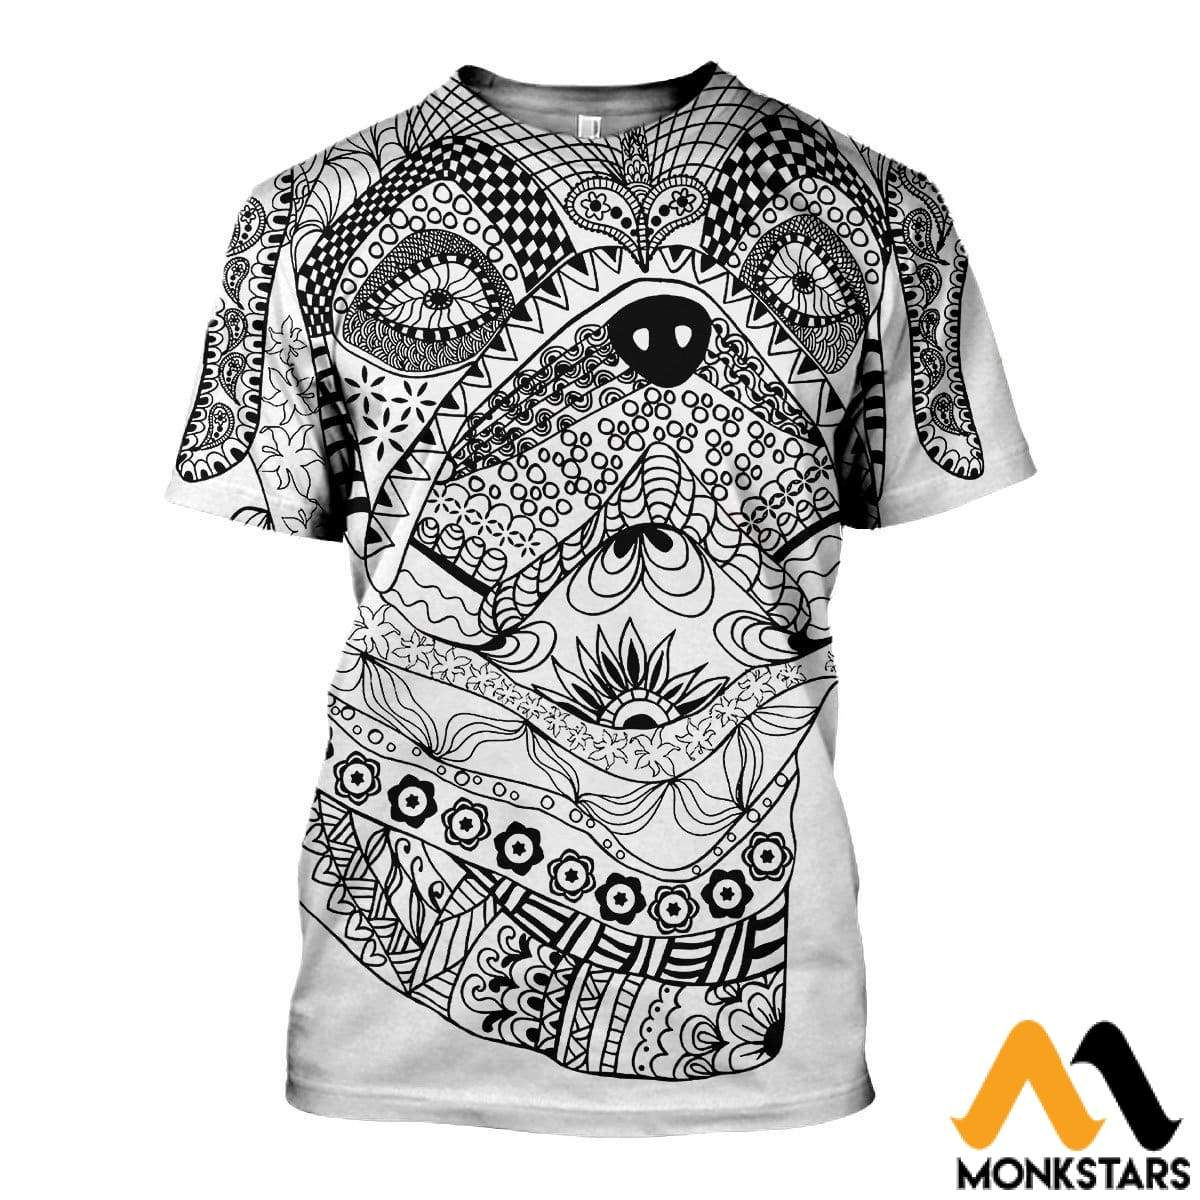 3D All Over Printed Bull Dog Mandala Shirts And Shorts T-Shirt / Xs Clothes